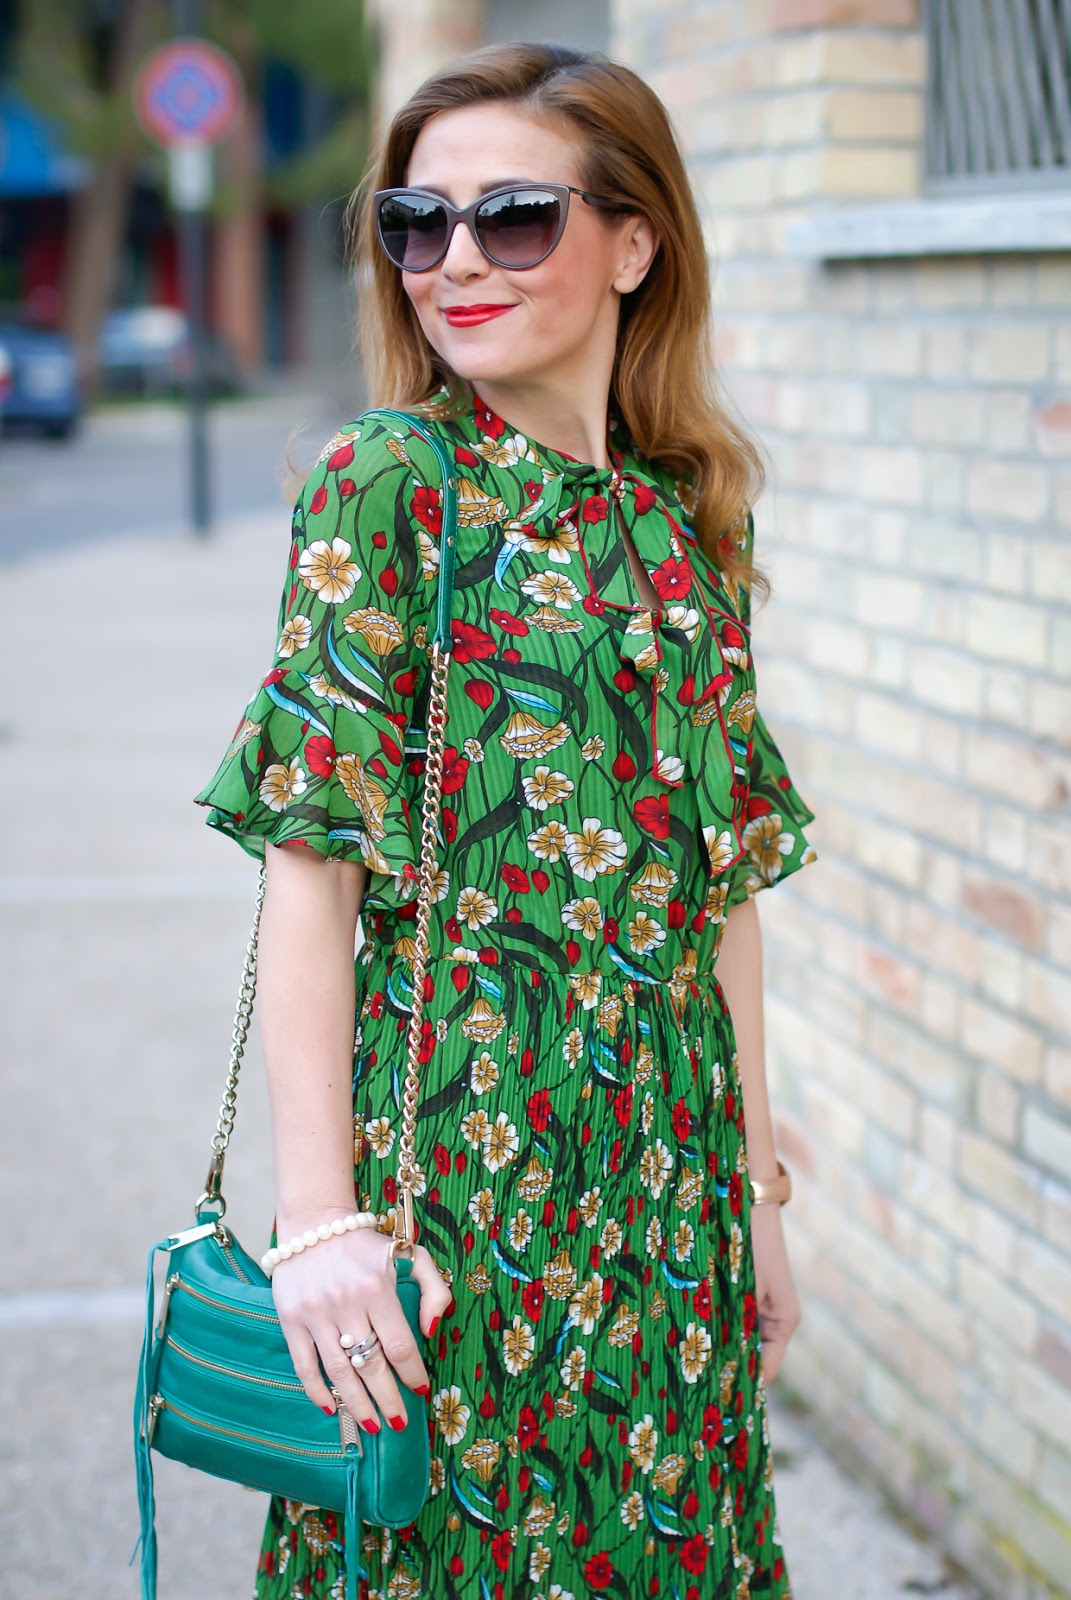 Metisu green pleated midi dress on Fashion and Cookies fashion blog, fashion blogger style